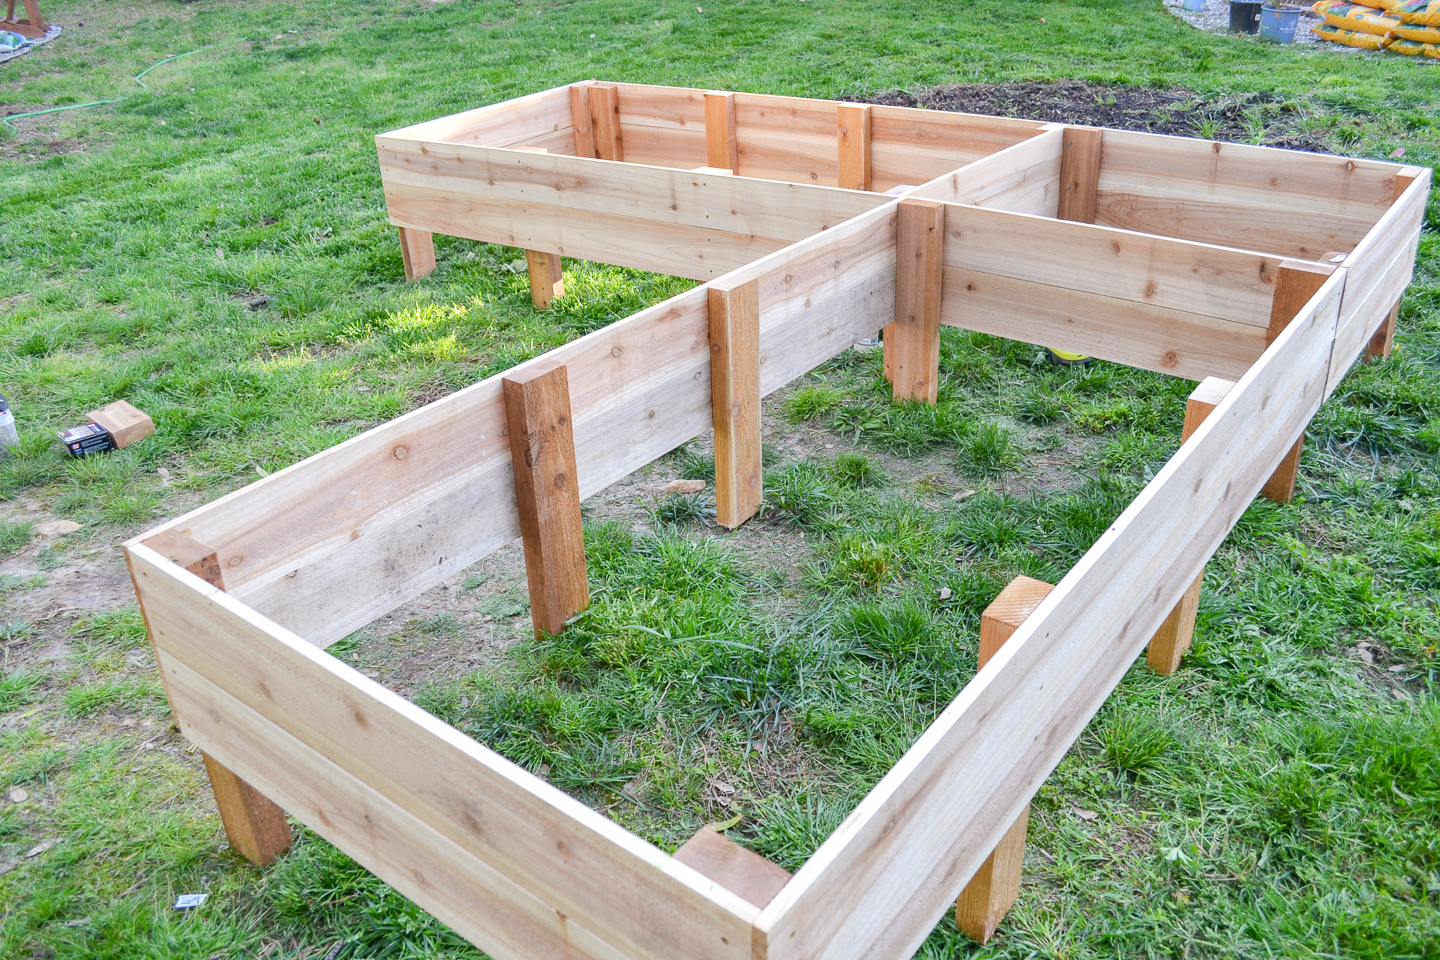 putting the garden bed together